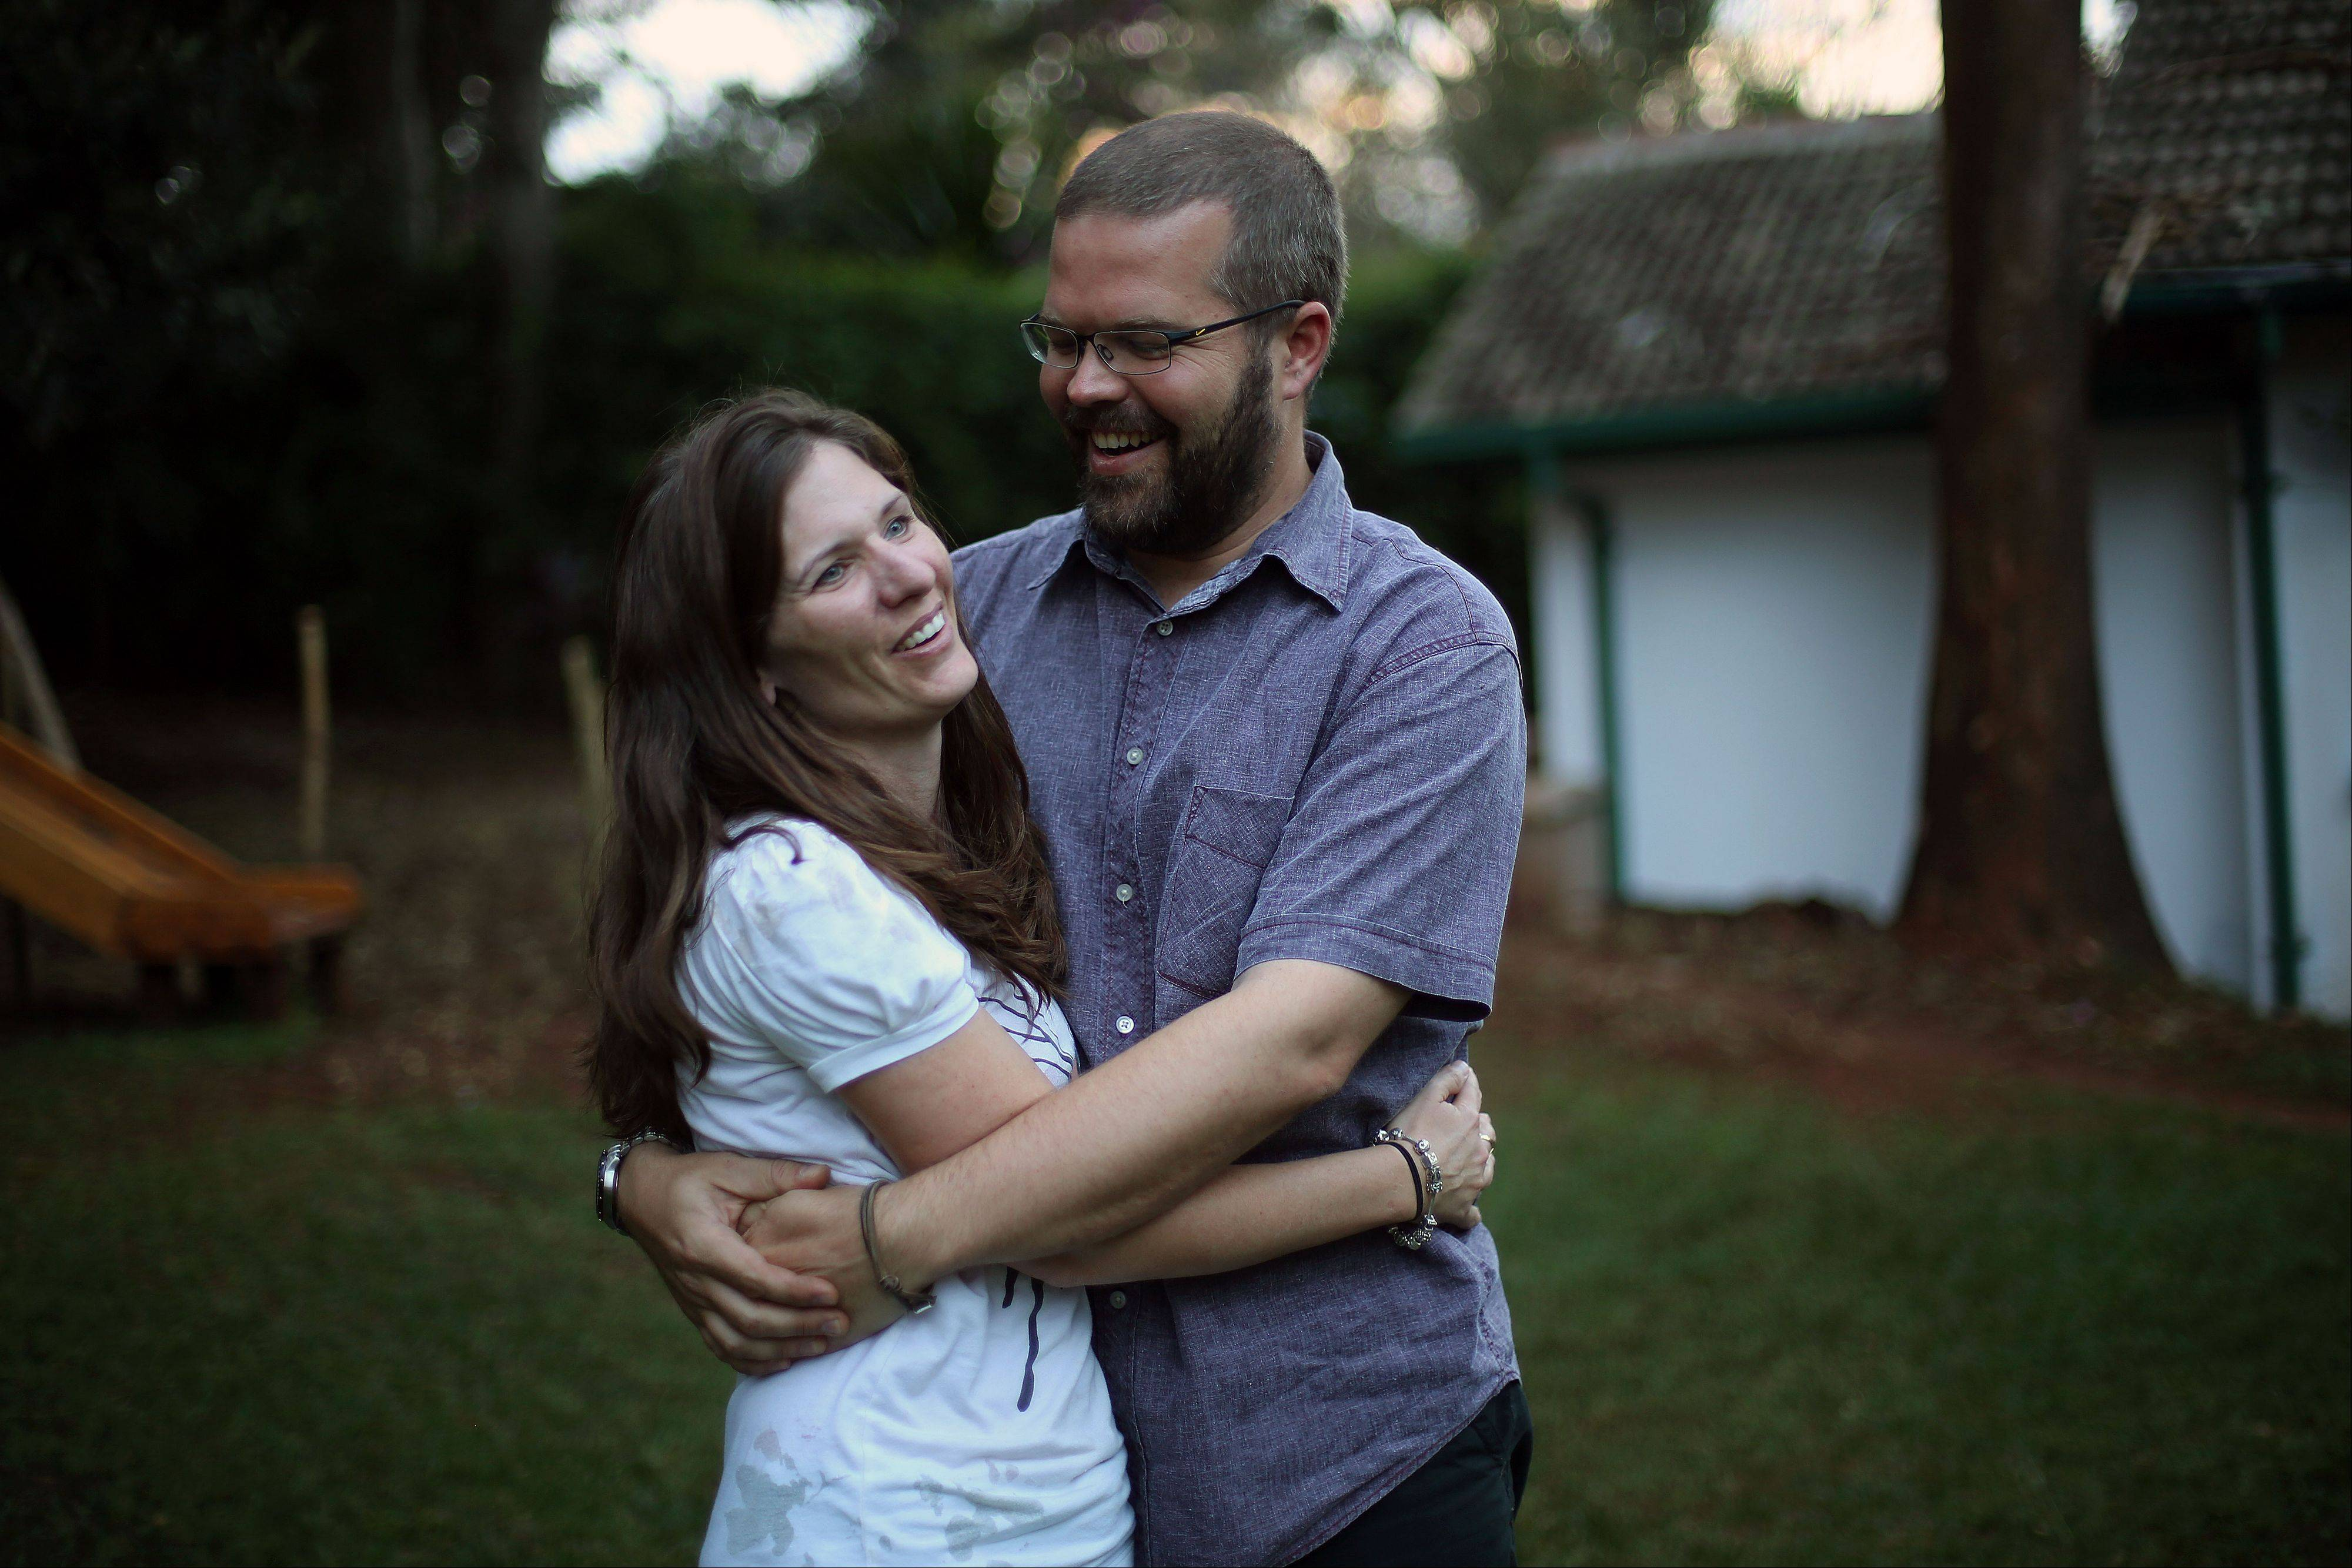 Katherine Walton, 38, from the United States, poses for a photograph Friday with her husband Philip during an interview with the Associated Press in Nairobi, Kenya. Walton survived the Westgate Mall attack with her five children and described the moment she nearly came face to face with the attackers.